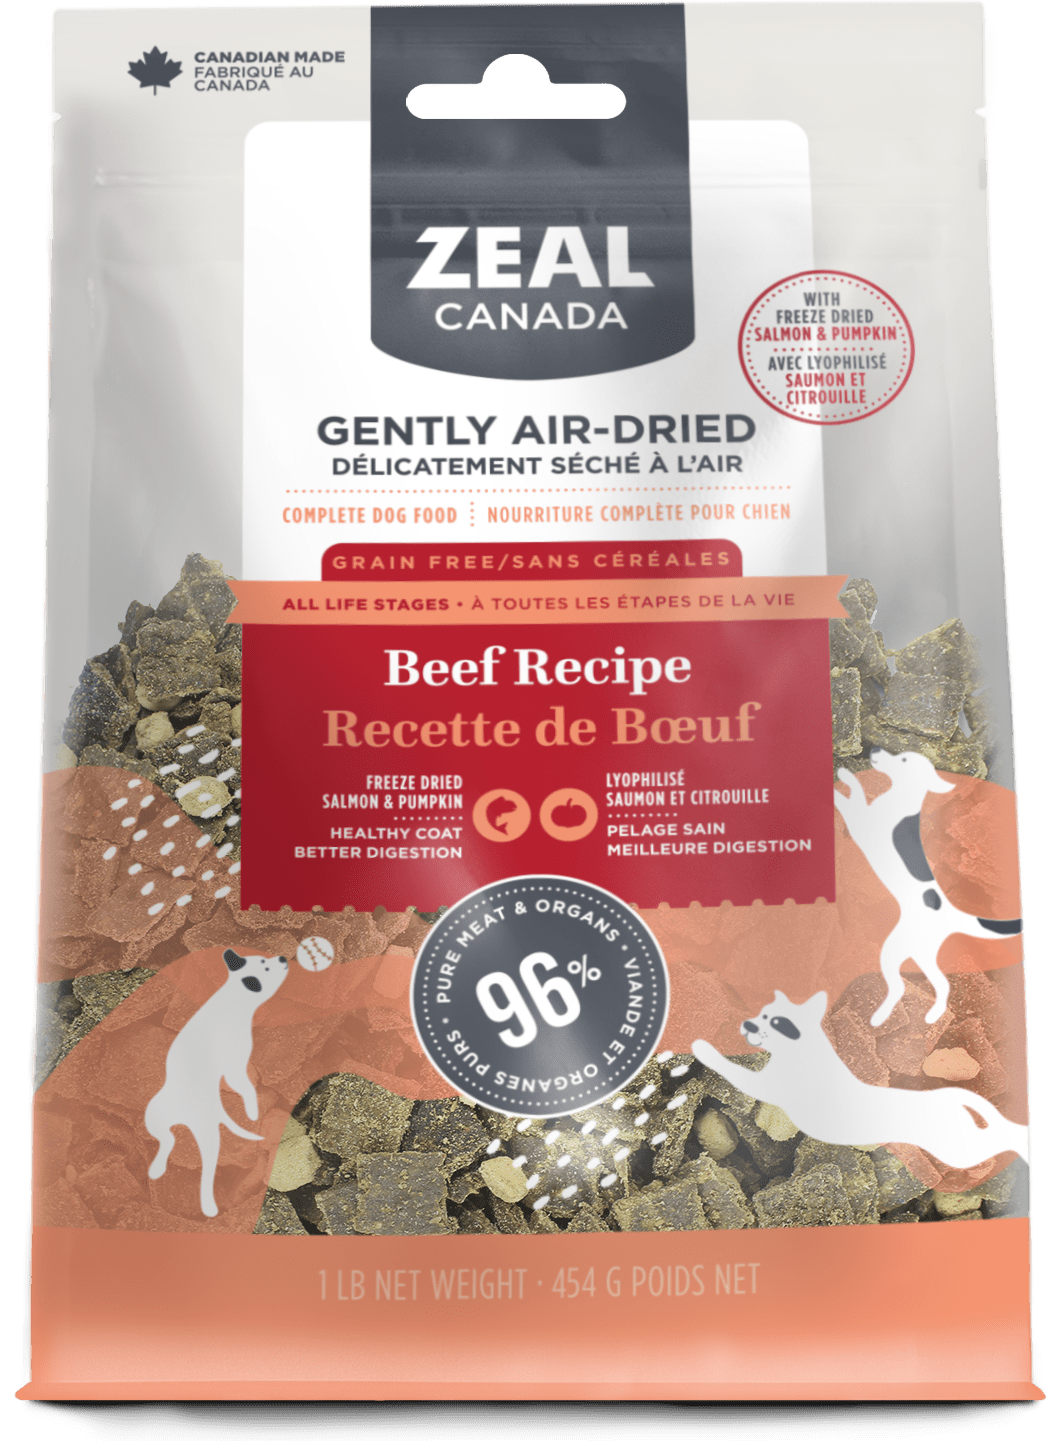 product image for Gently Air-Dried Beef with Freeze-Dried Salmon & Pumpkin for Dogs